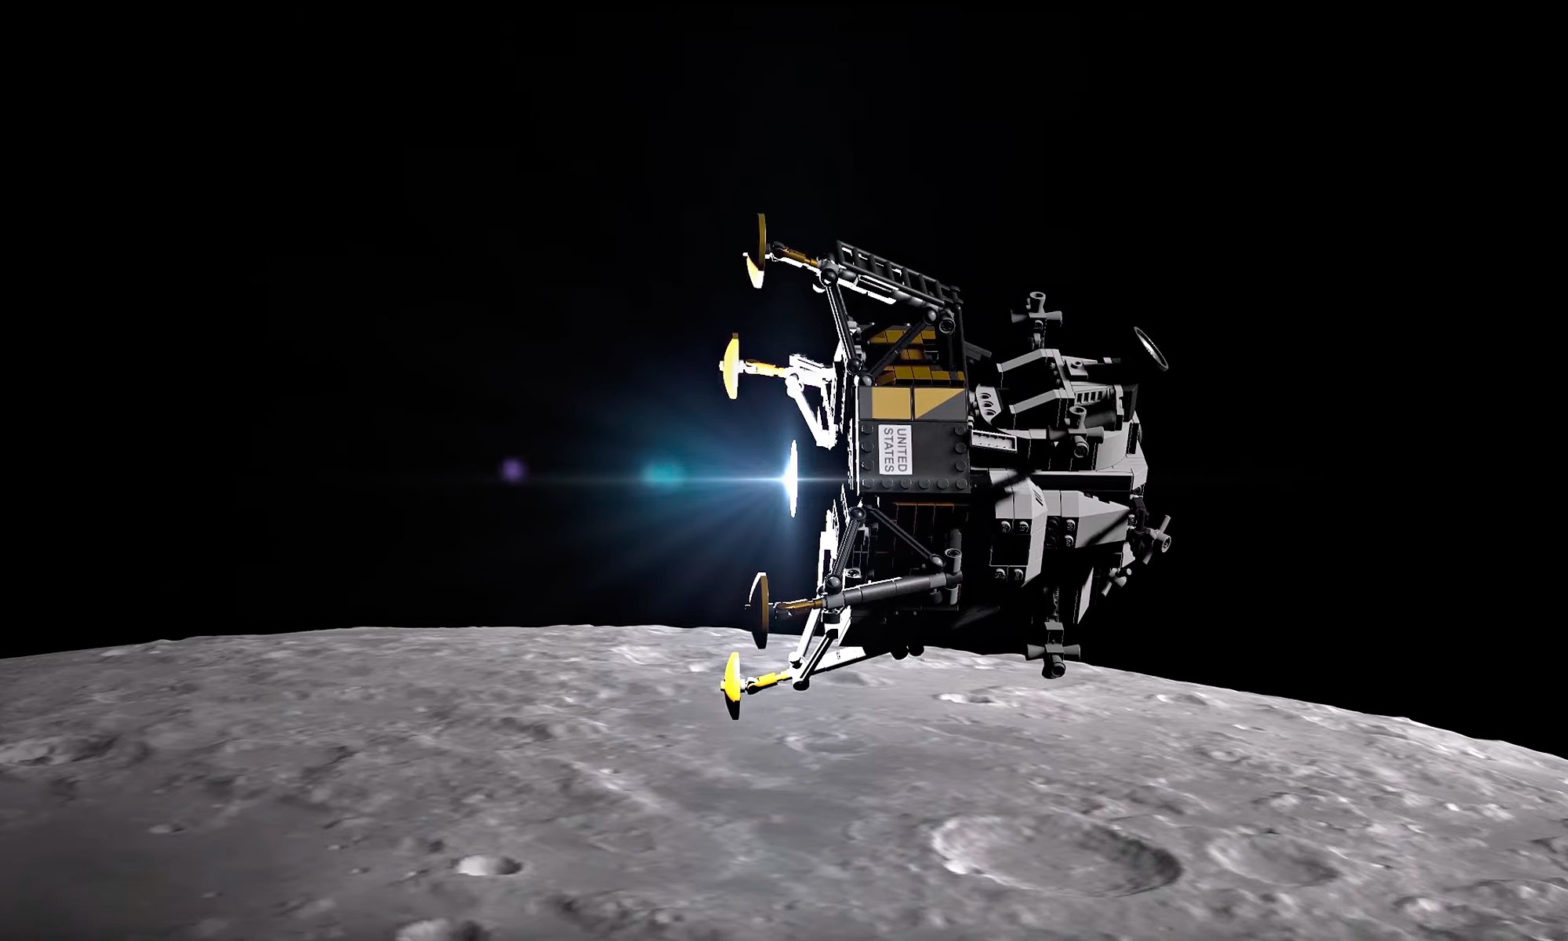 Lunar Landing Recreated with LEGO 10266